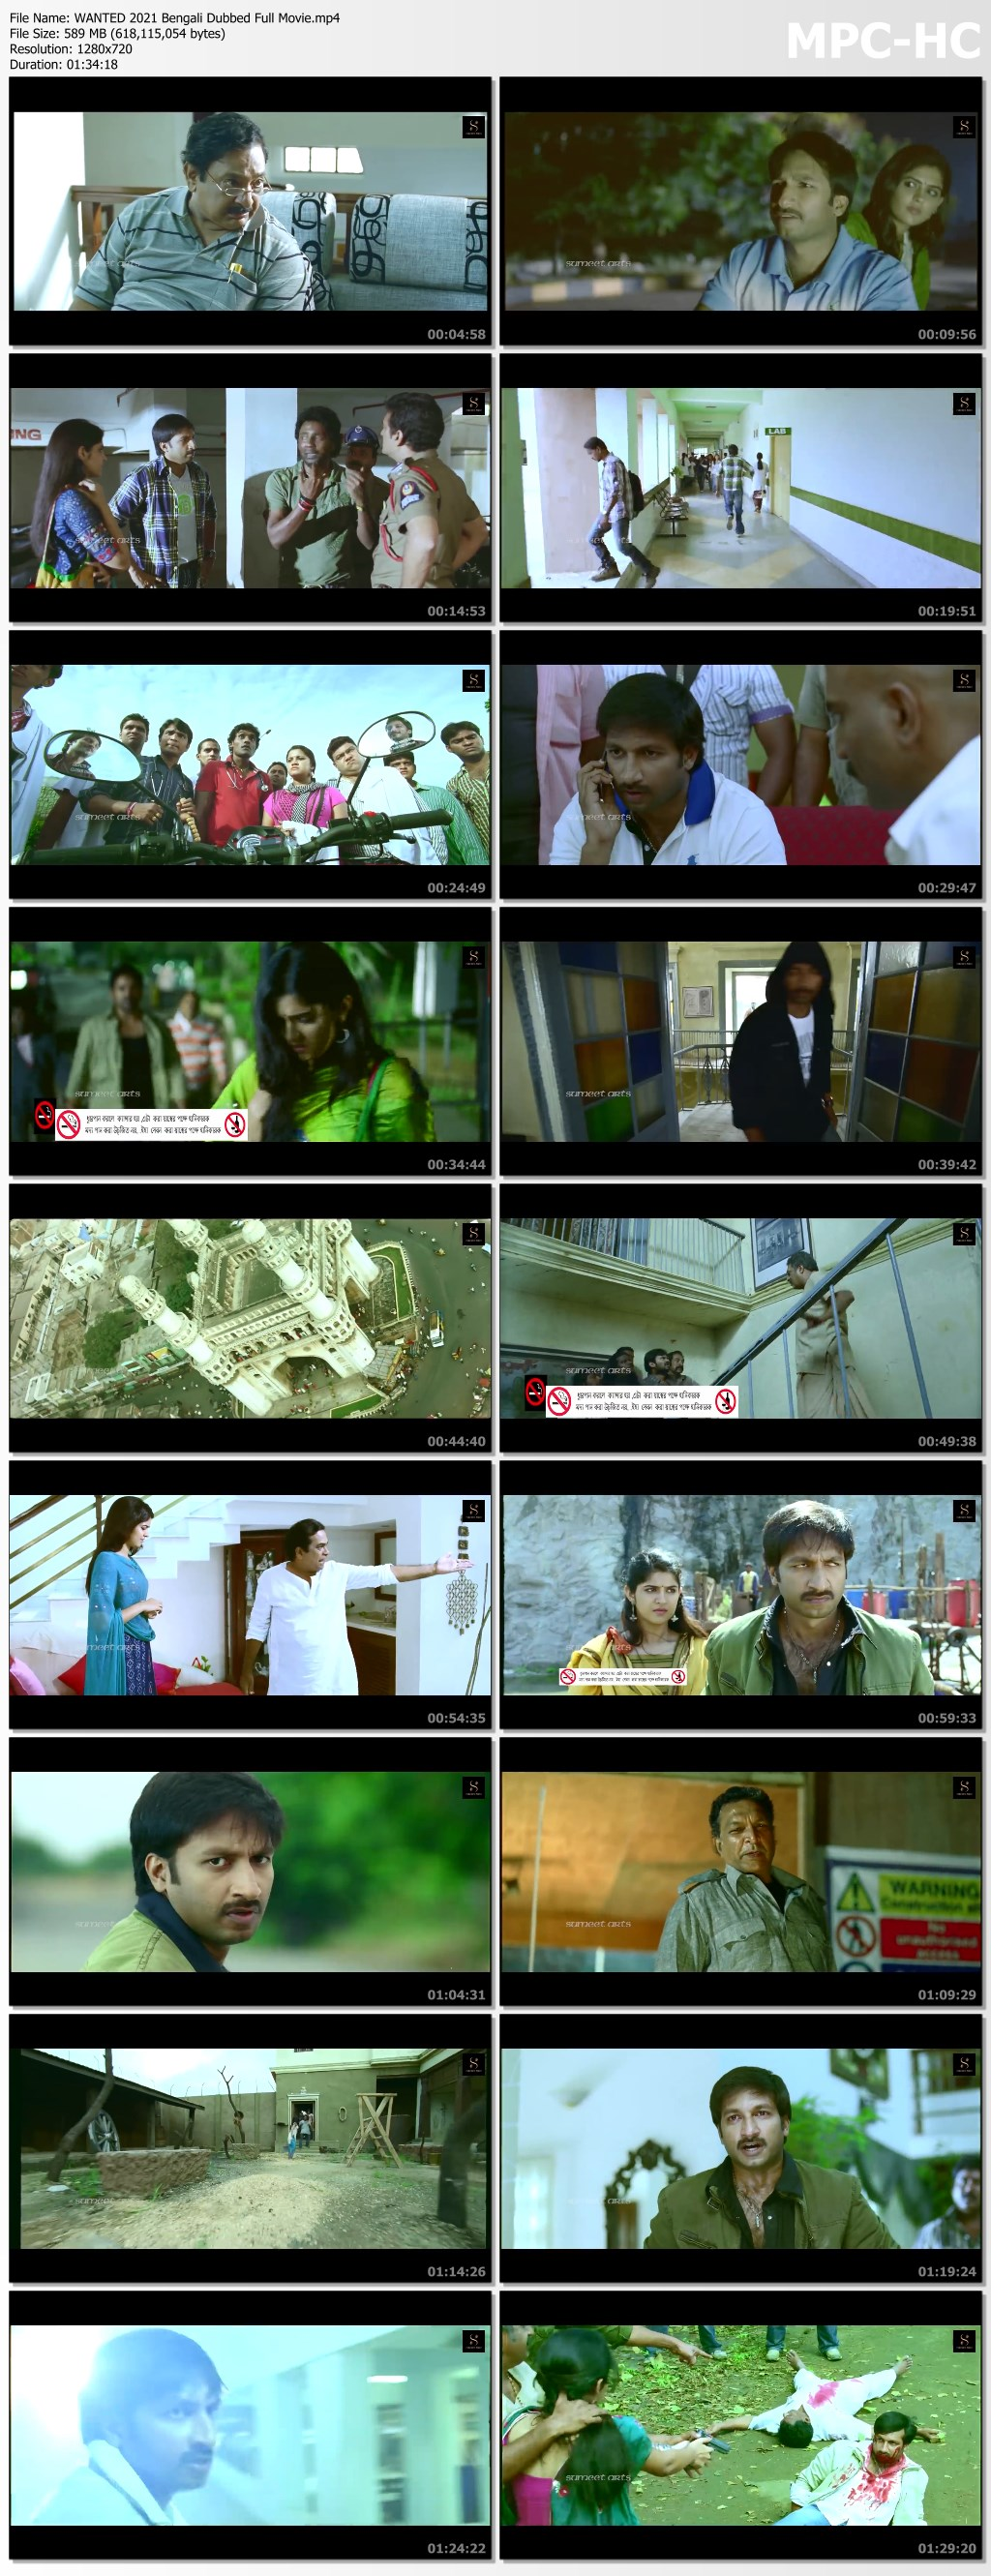 WANTED 2021 Bengali Dubbed Full Movie.mp4 thumbs